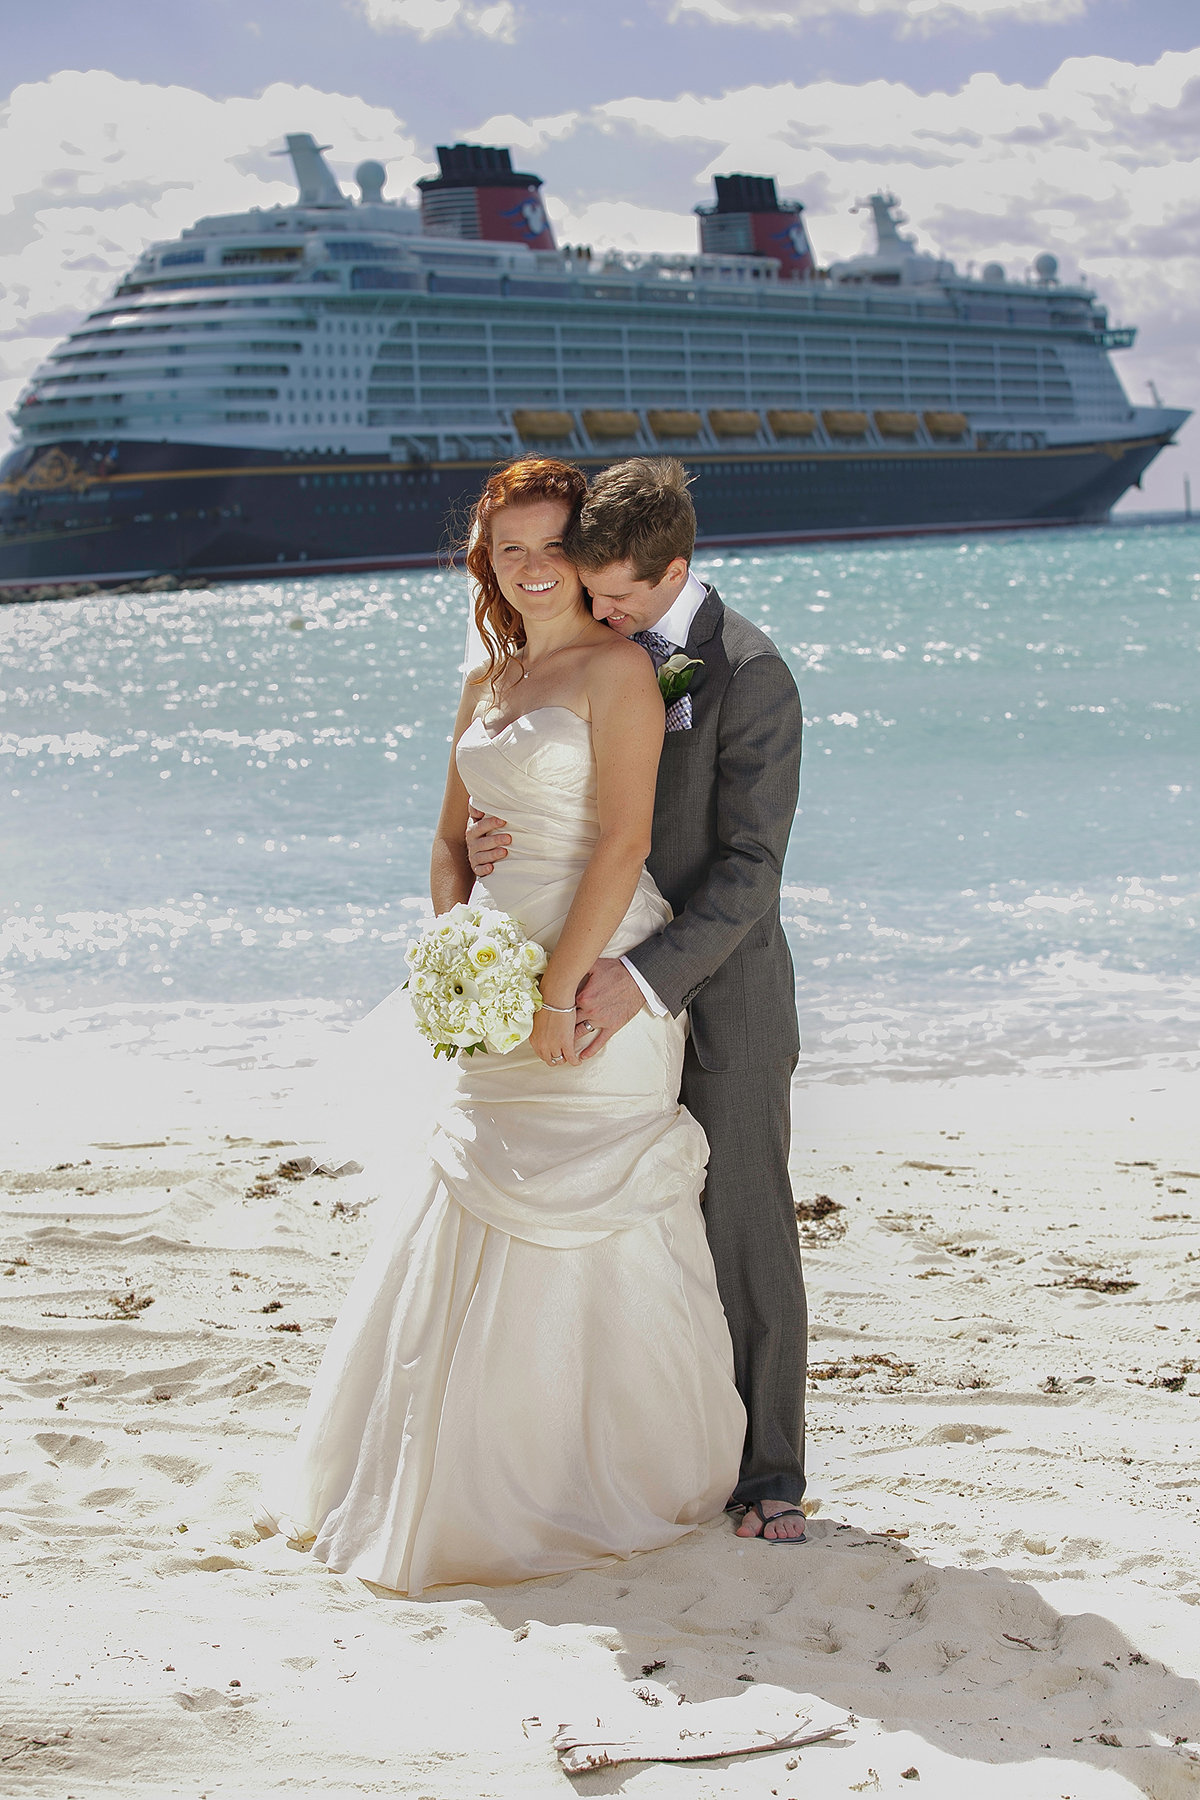 Disney-Cruise-Wedding-Jessica-Lea-Castaway-Cay-Ginger-and-Tim-IMG-005